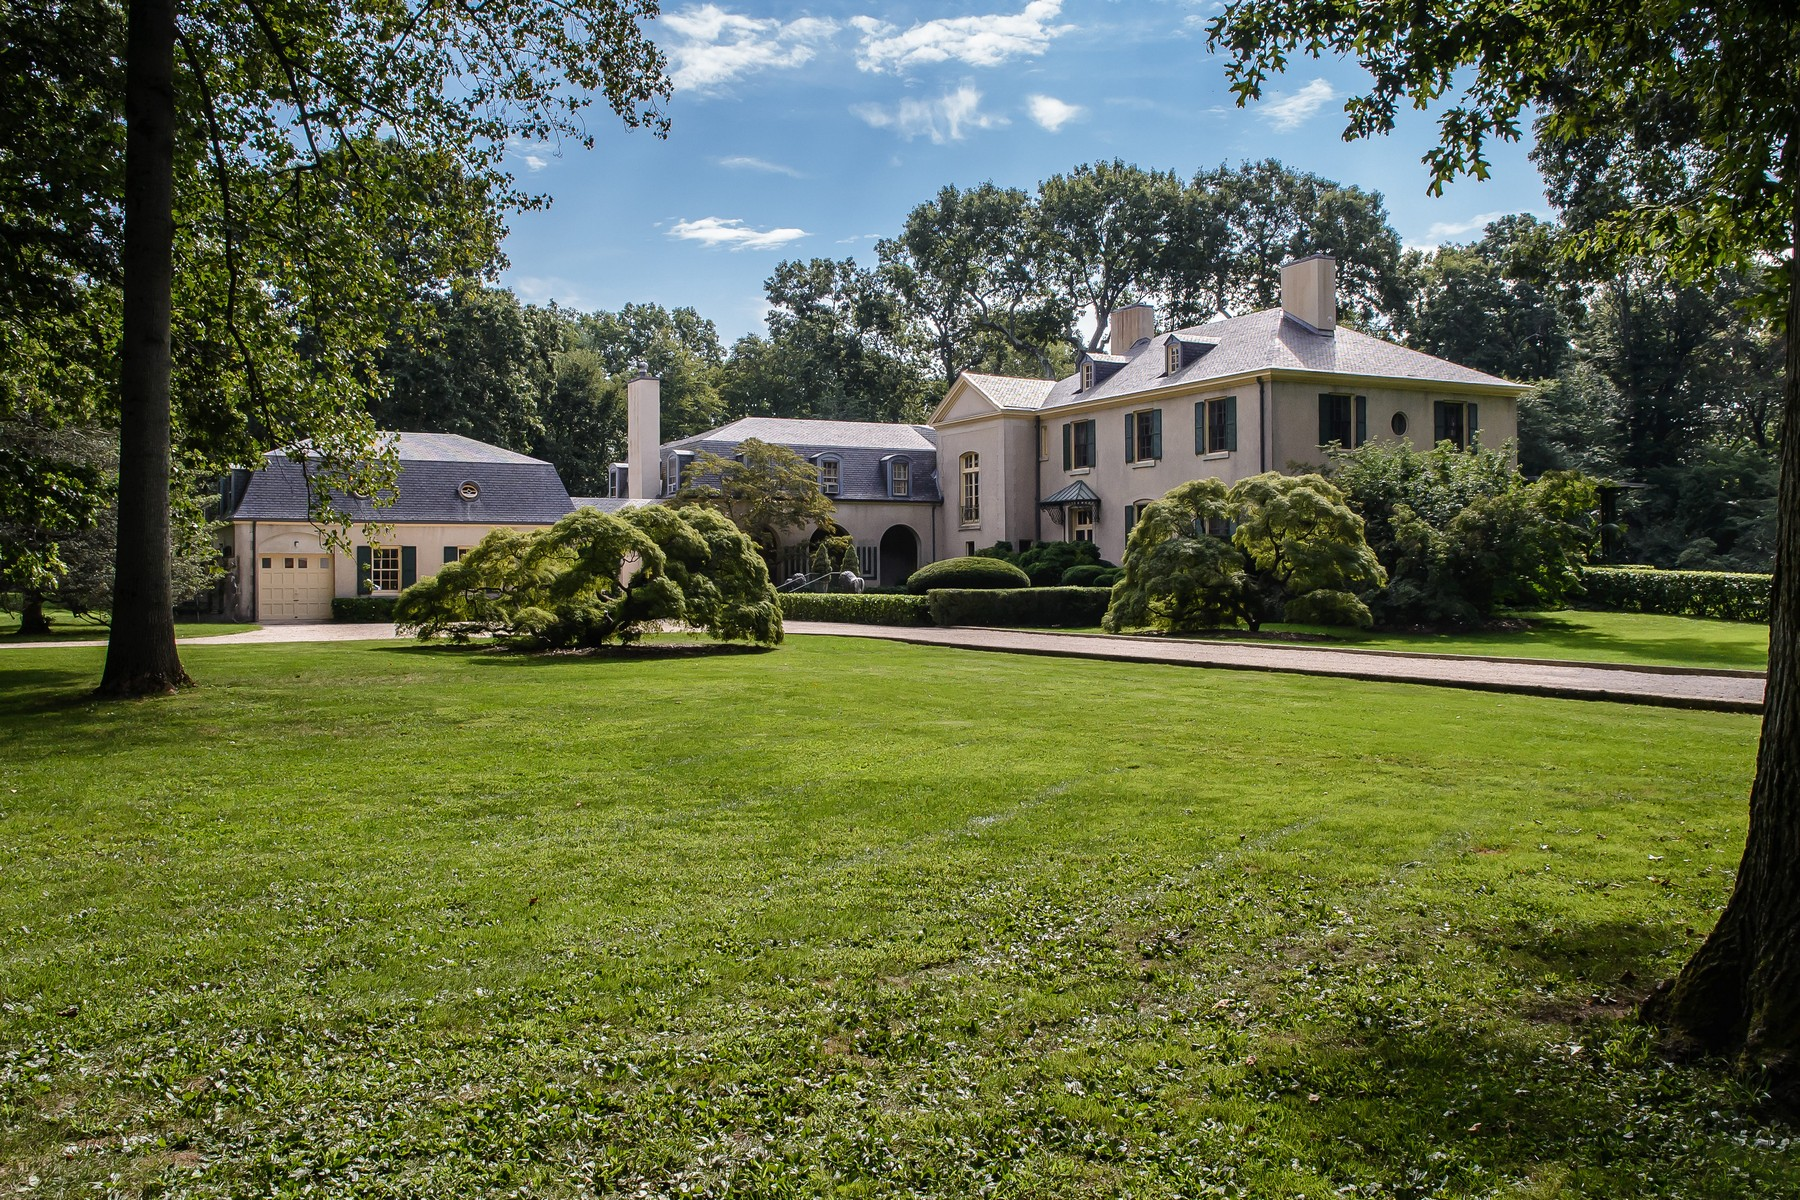 Villa per Vendita alle ore Hastings House 10 Hastings Rd Old Westbury, New York, 11568 Stati Uniti